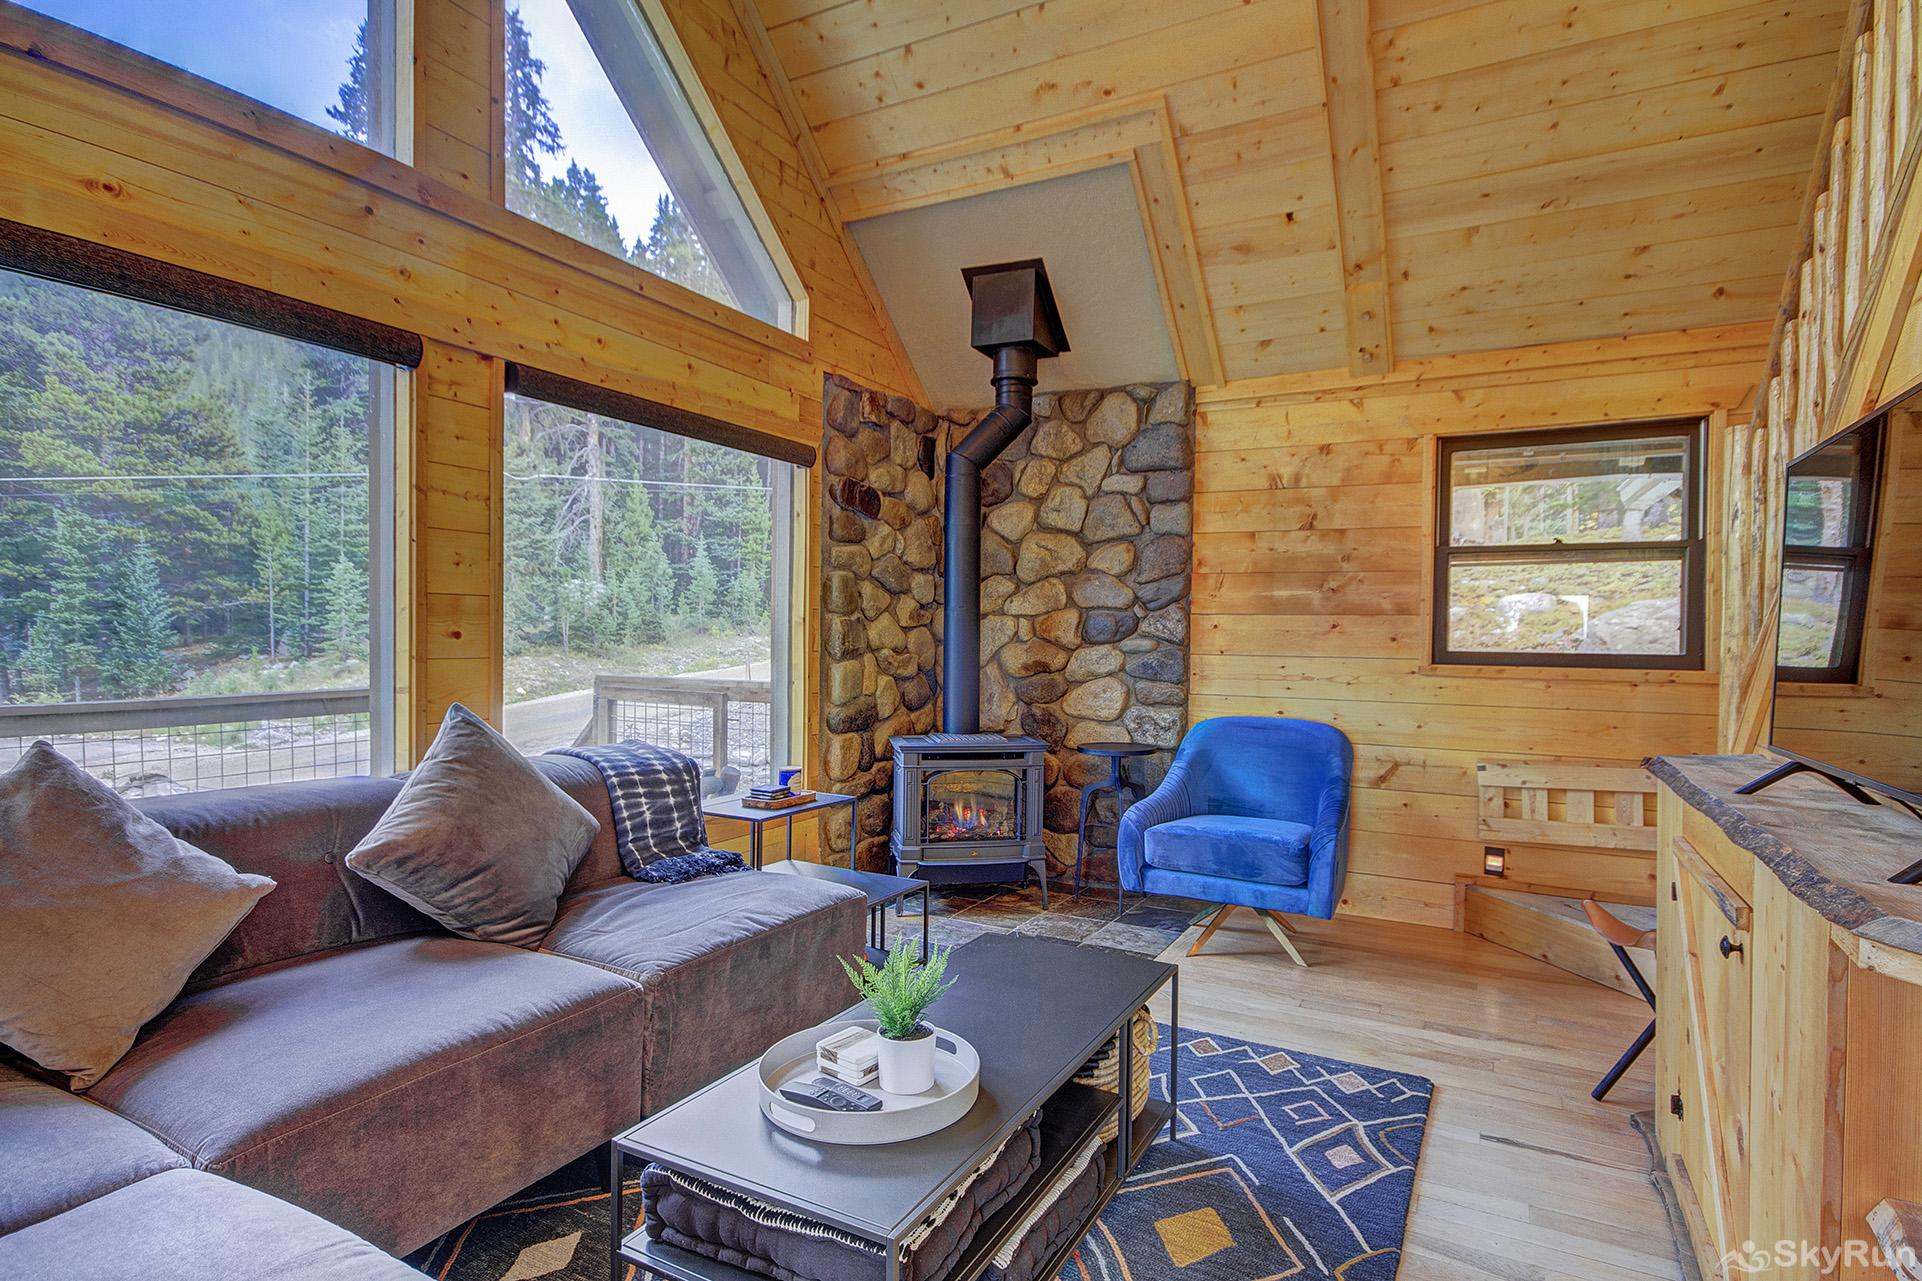 Black Bear Chalet Stay cozy warm by the gas fireplace on those cold winter nights